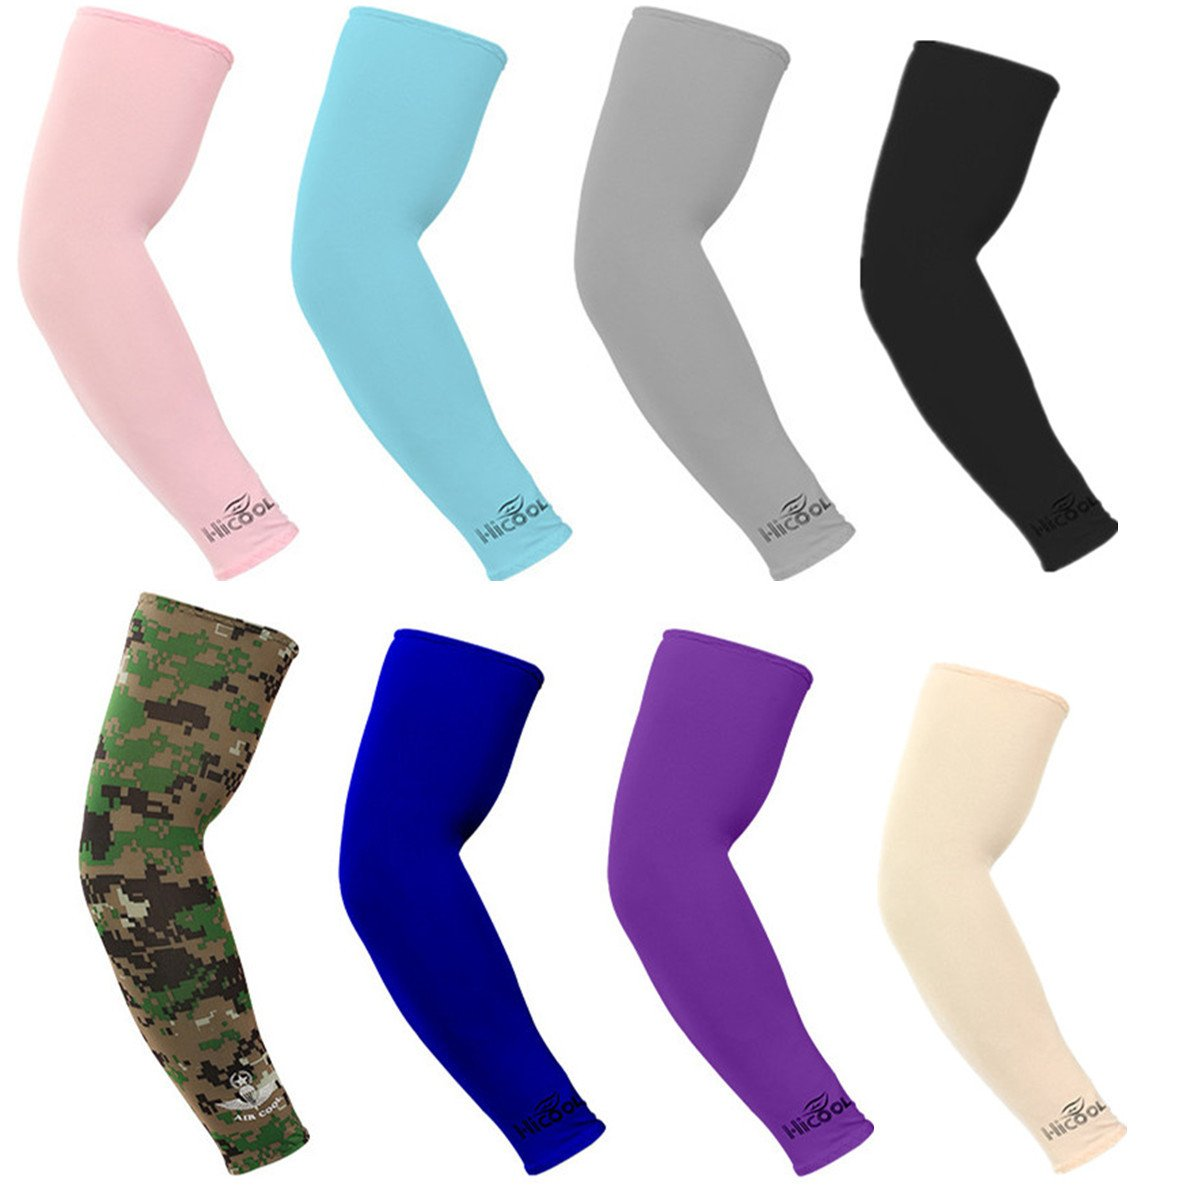 Kmool UV Protection, Compression & Cooling Arm Sleeves for Cycling/Golf/Basketball/Other Sports (8 pairs)